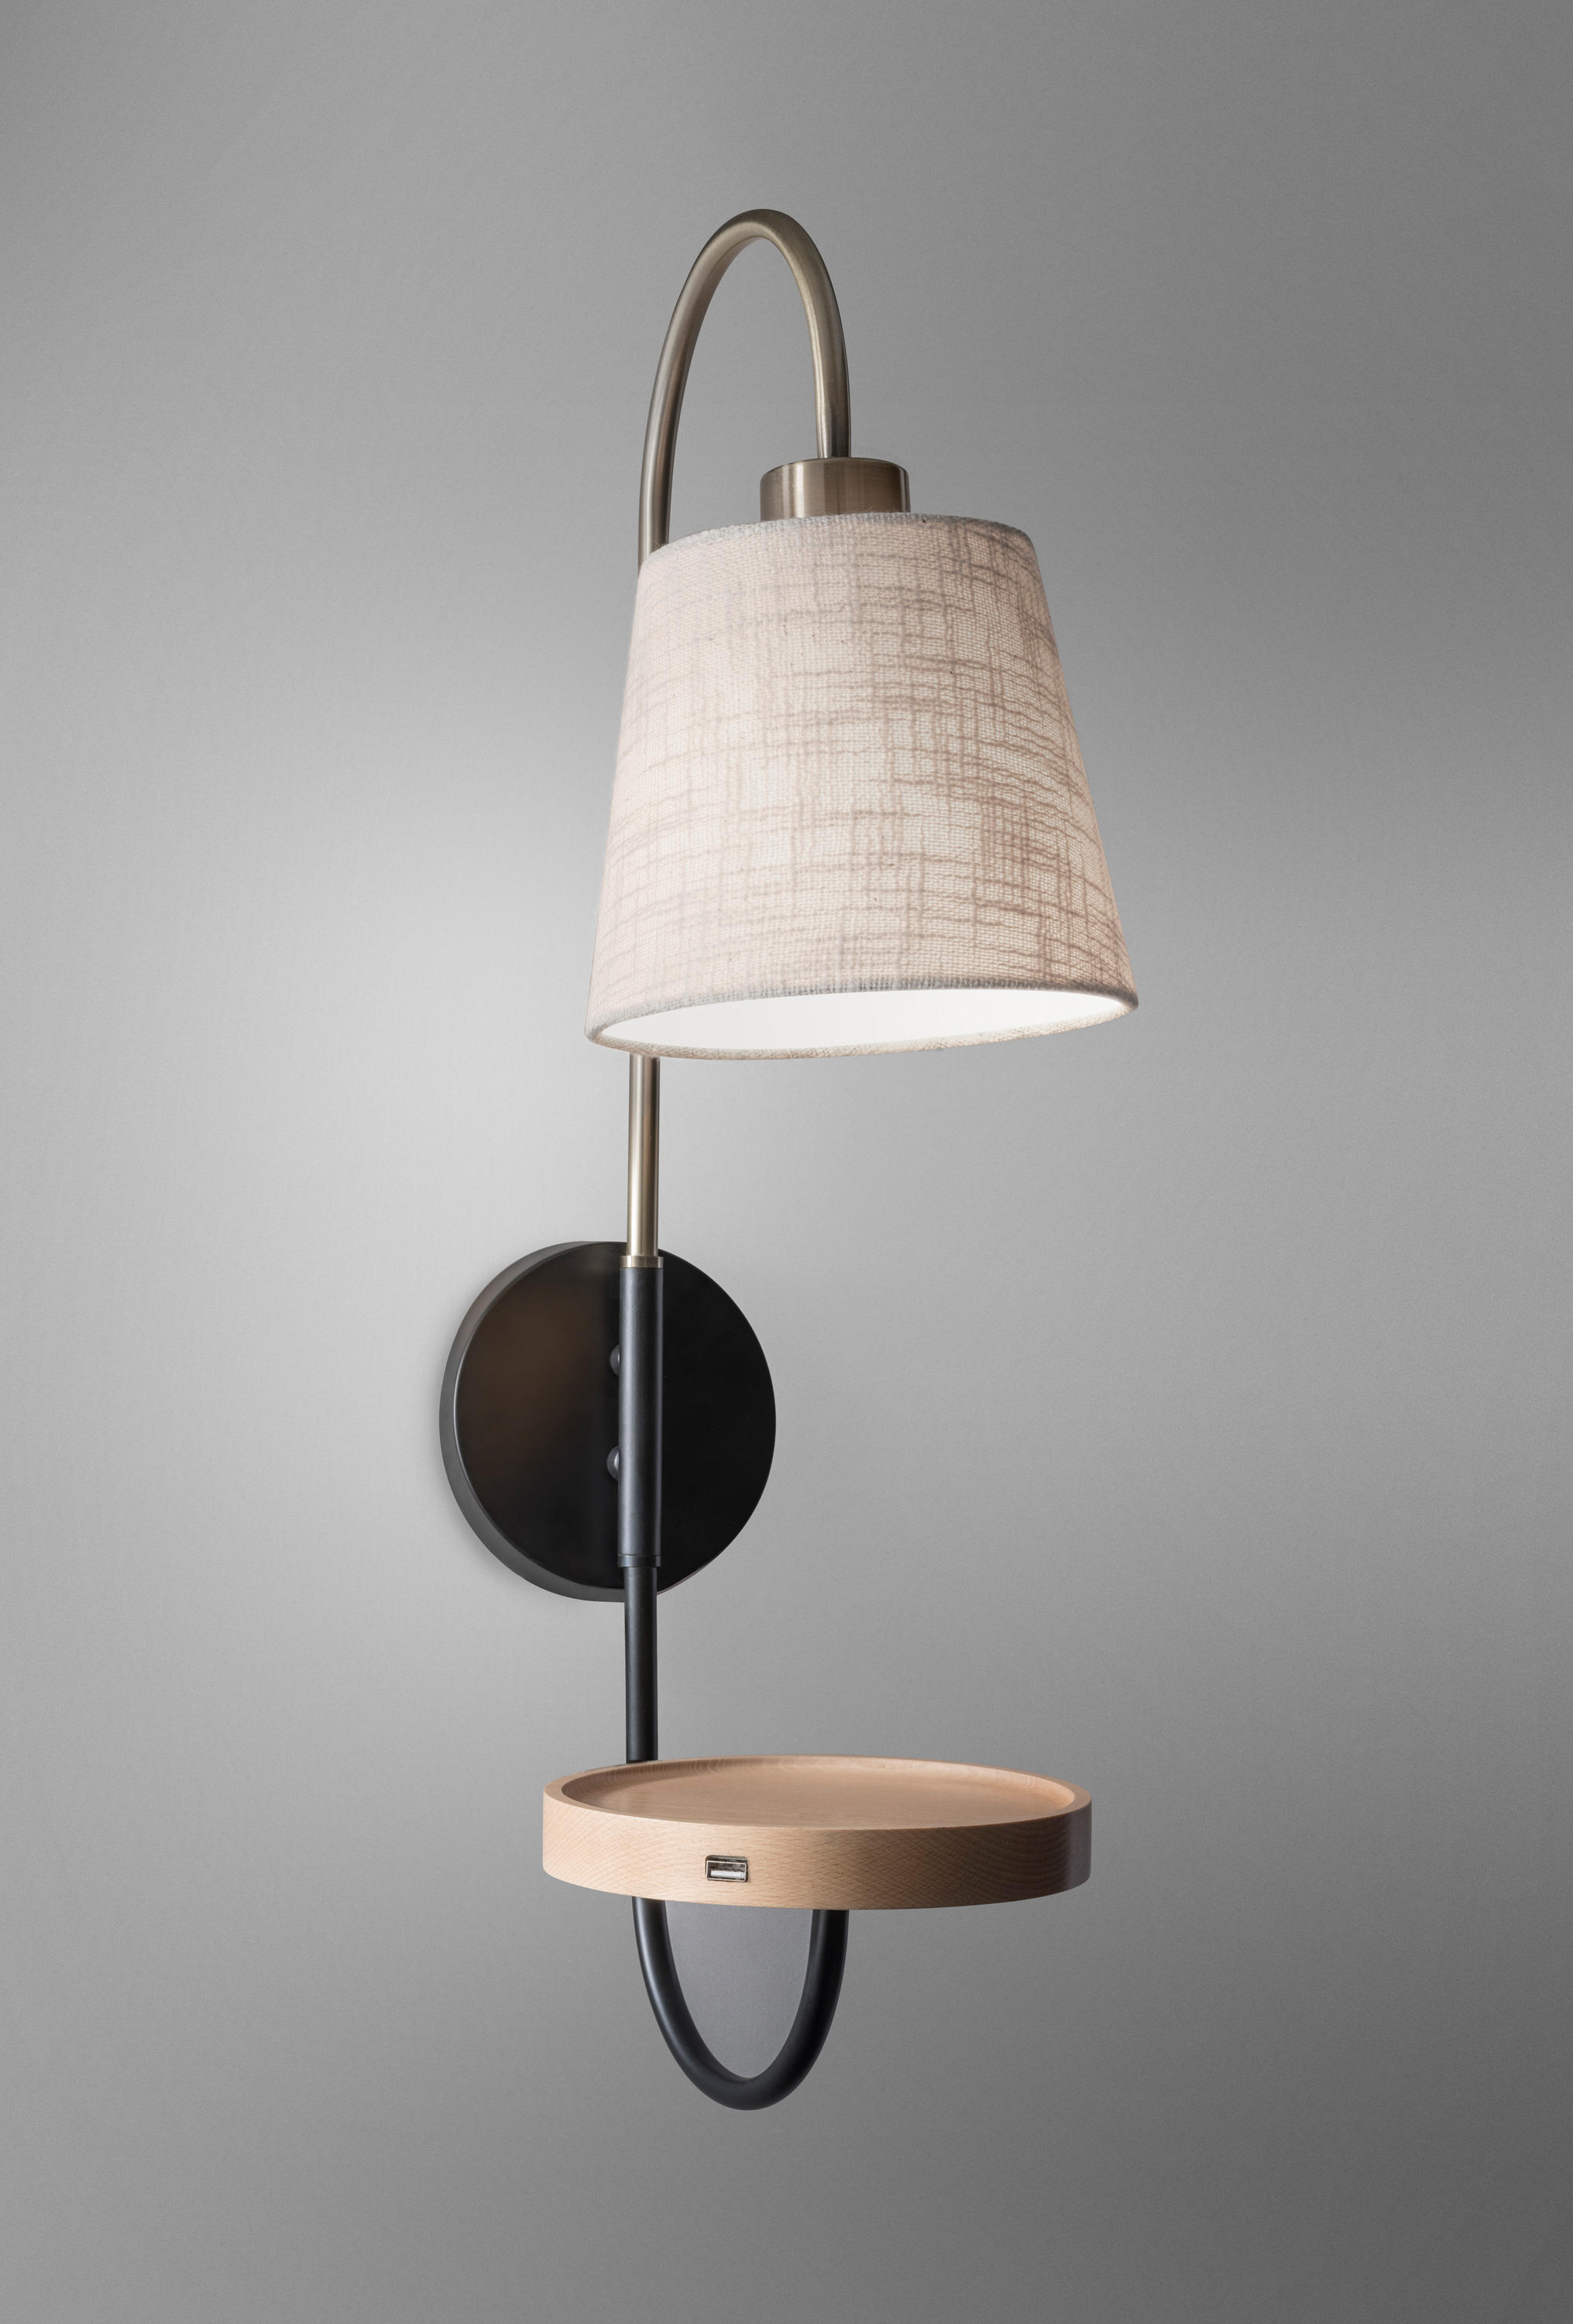 Jeffrey Wall Lamp Amp Designer Furniture Architonic